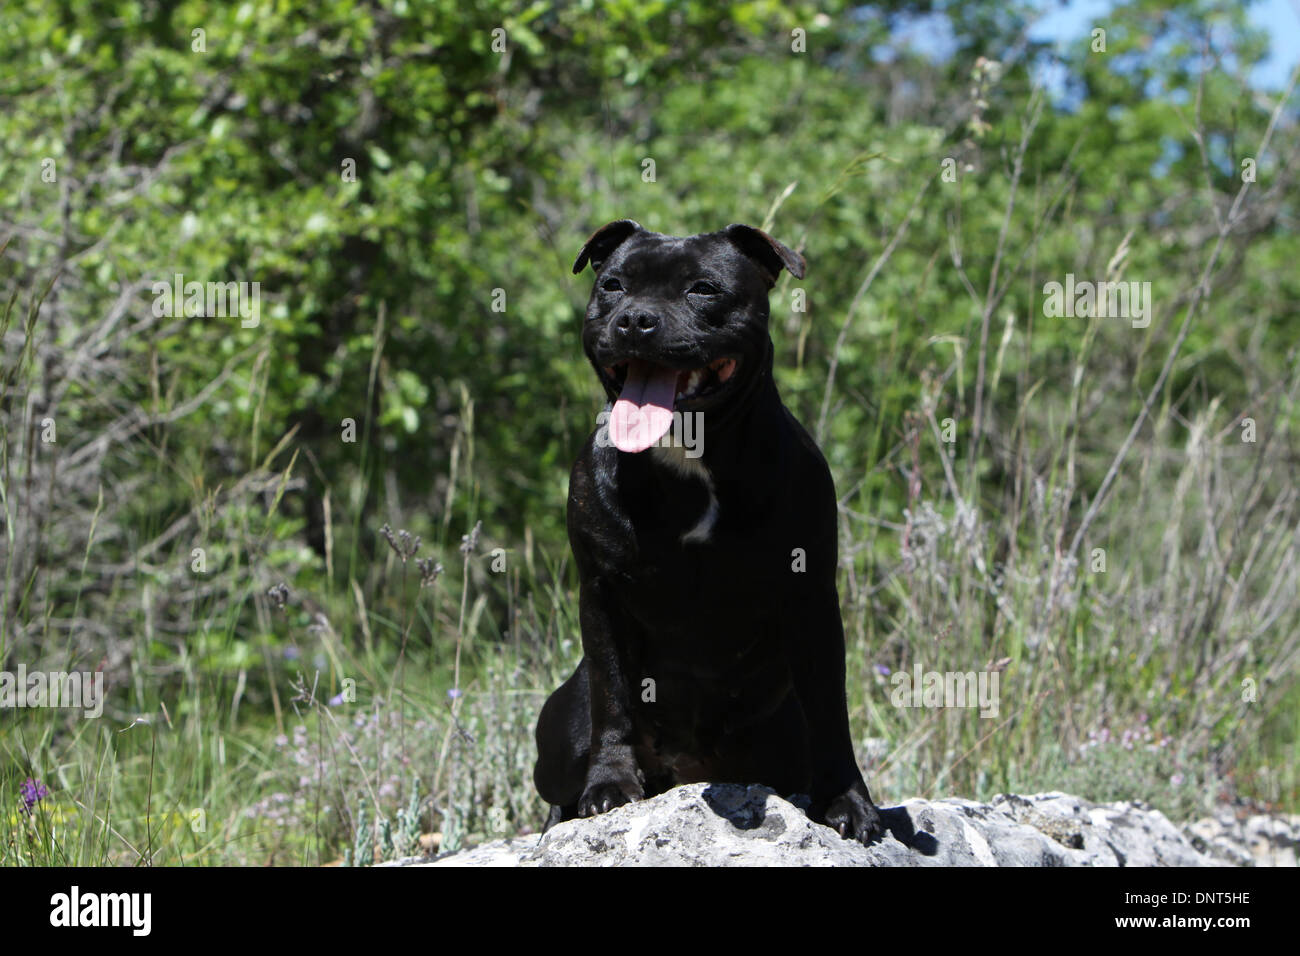 dog Staffordshire Bull Terrier / Staffie  adult sitting on a rock - Stock Image